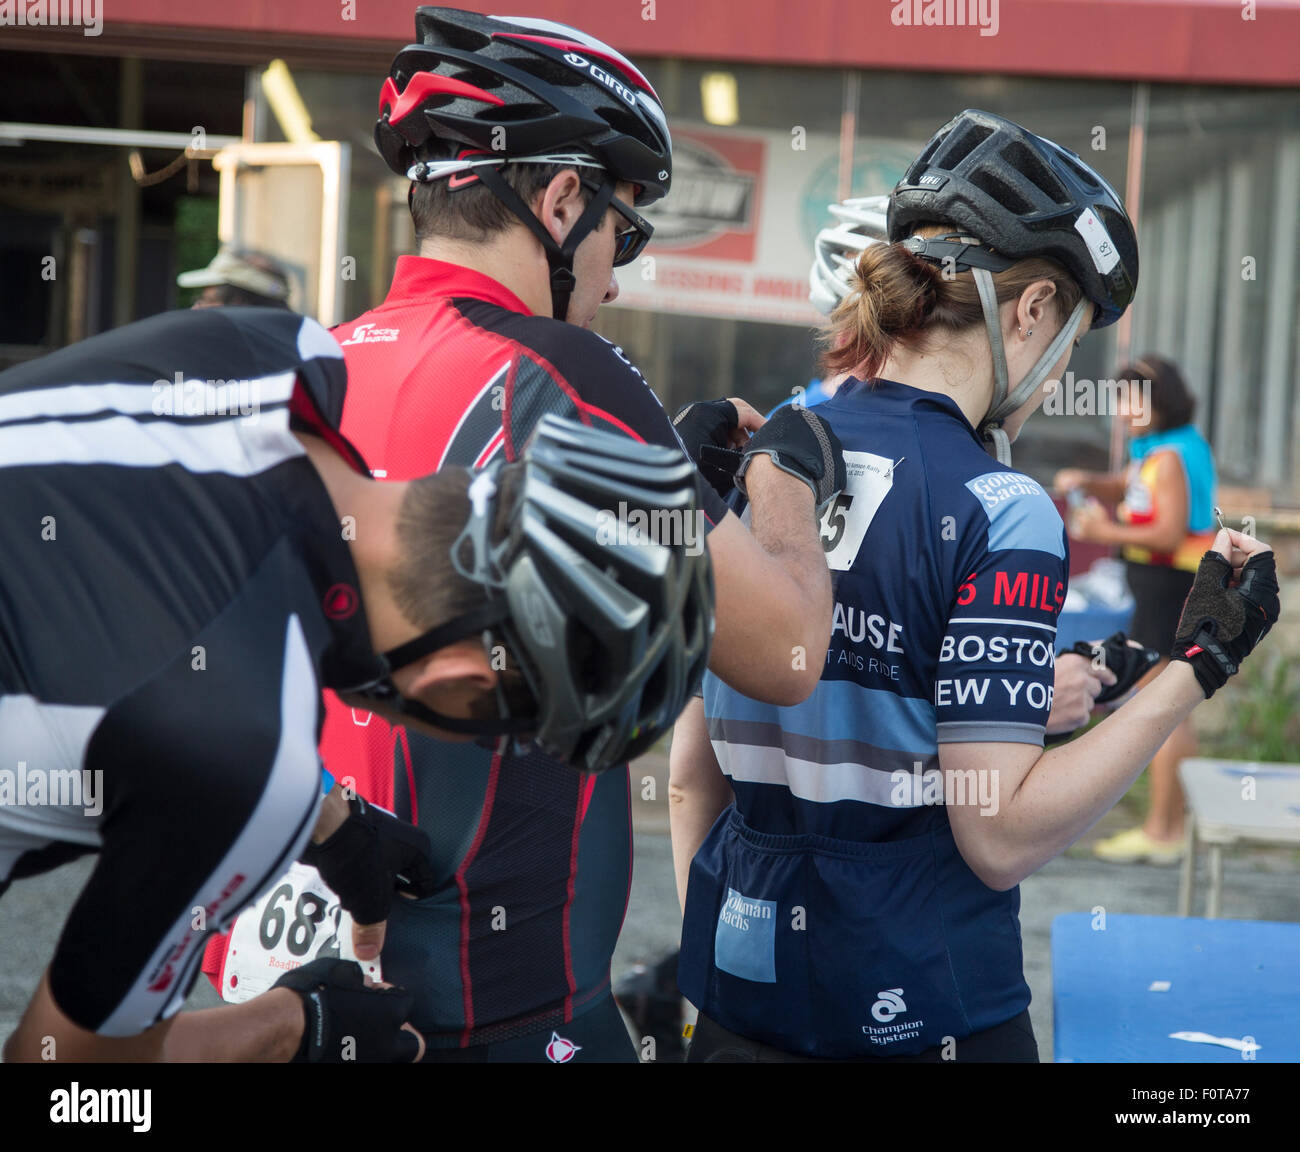 Participants getting their numbers pinned on their backs - Stock Image